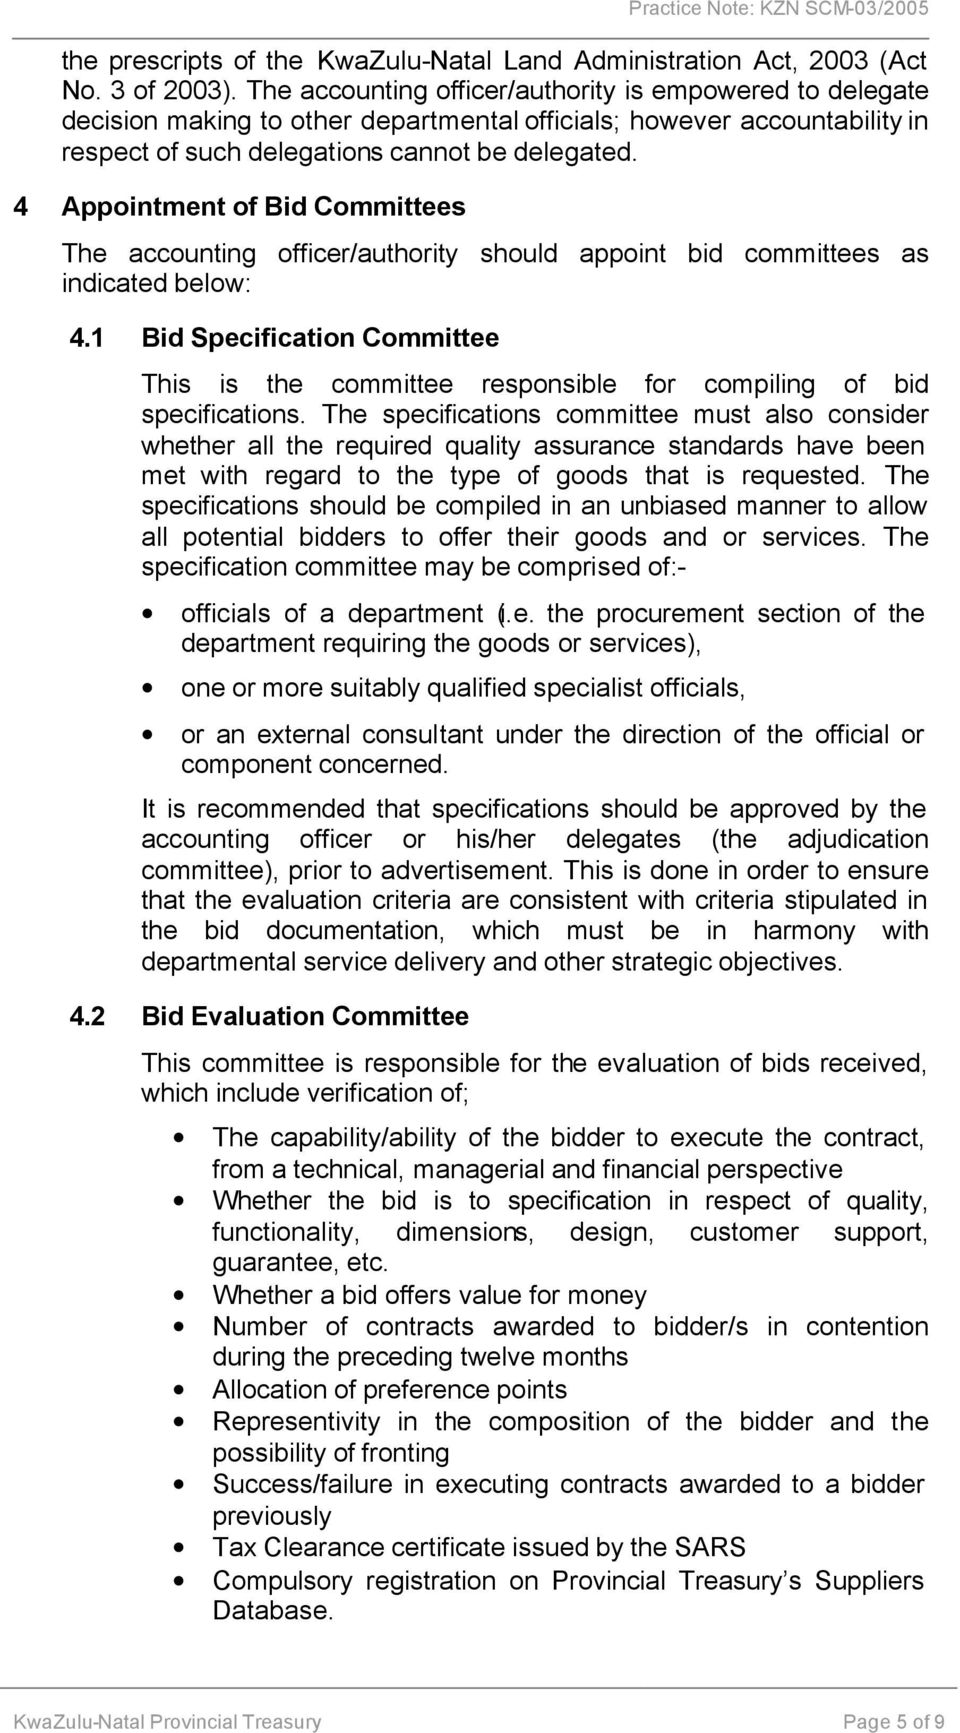 4 Appointment of Bid Committees The accounting officer/authority should appoint bid committees as indicated below: 4.